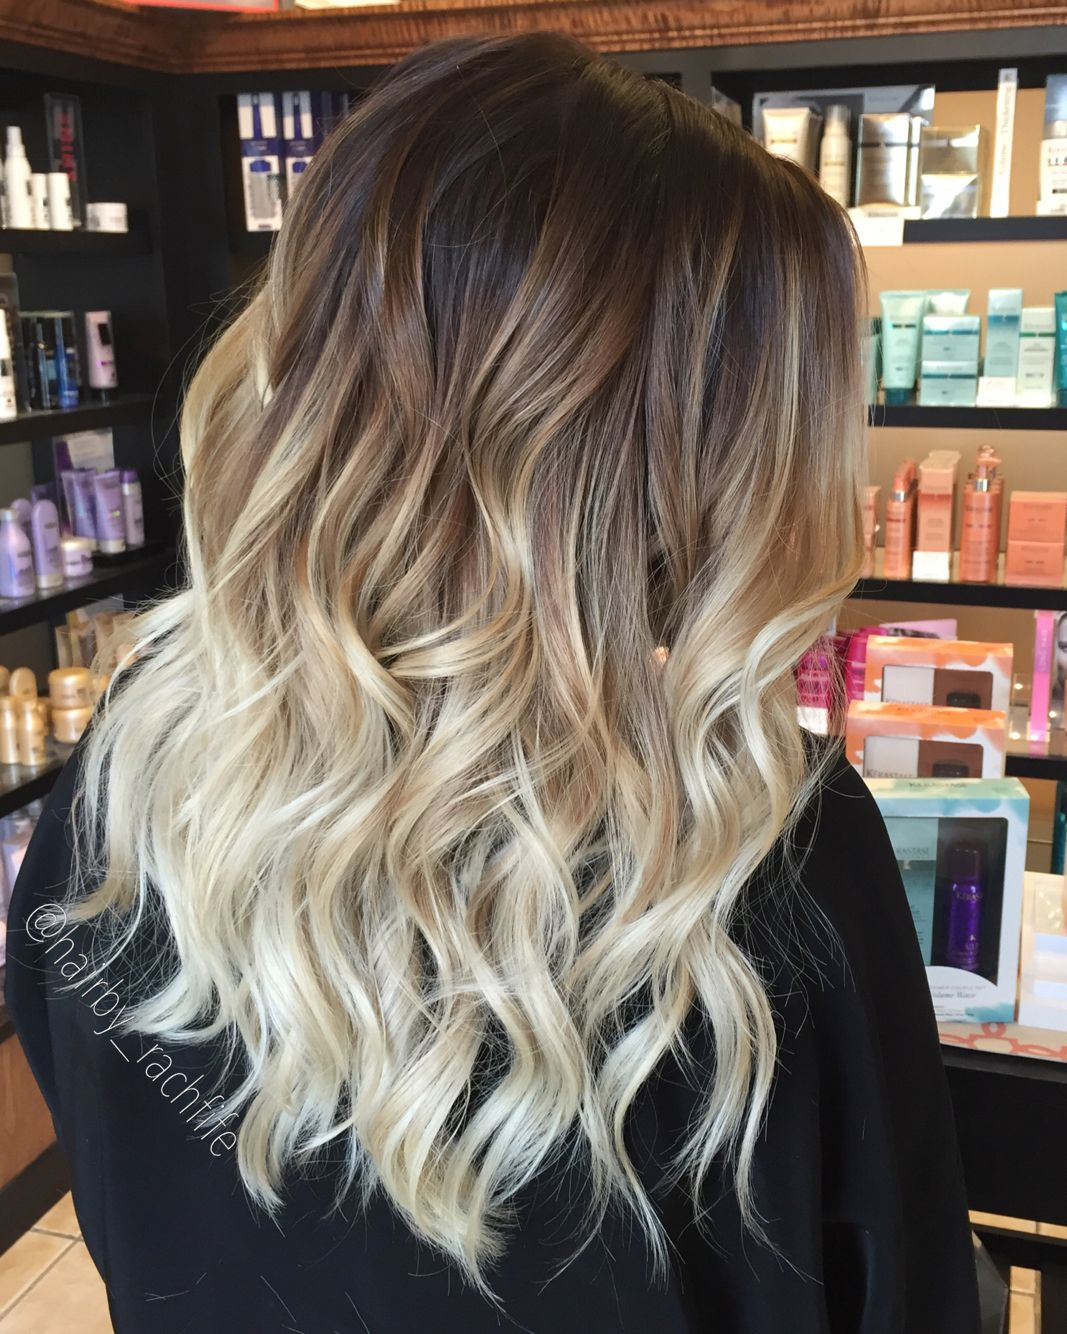 50 Amazing Blonde Balayage Haircolor Hair Ideas